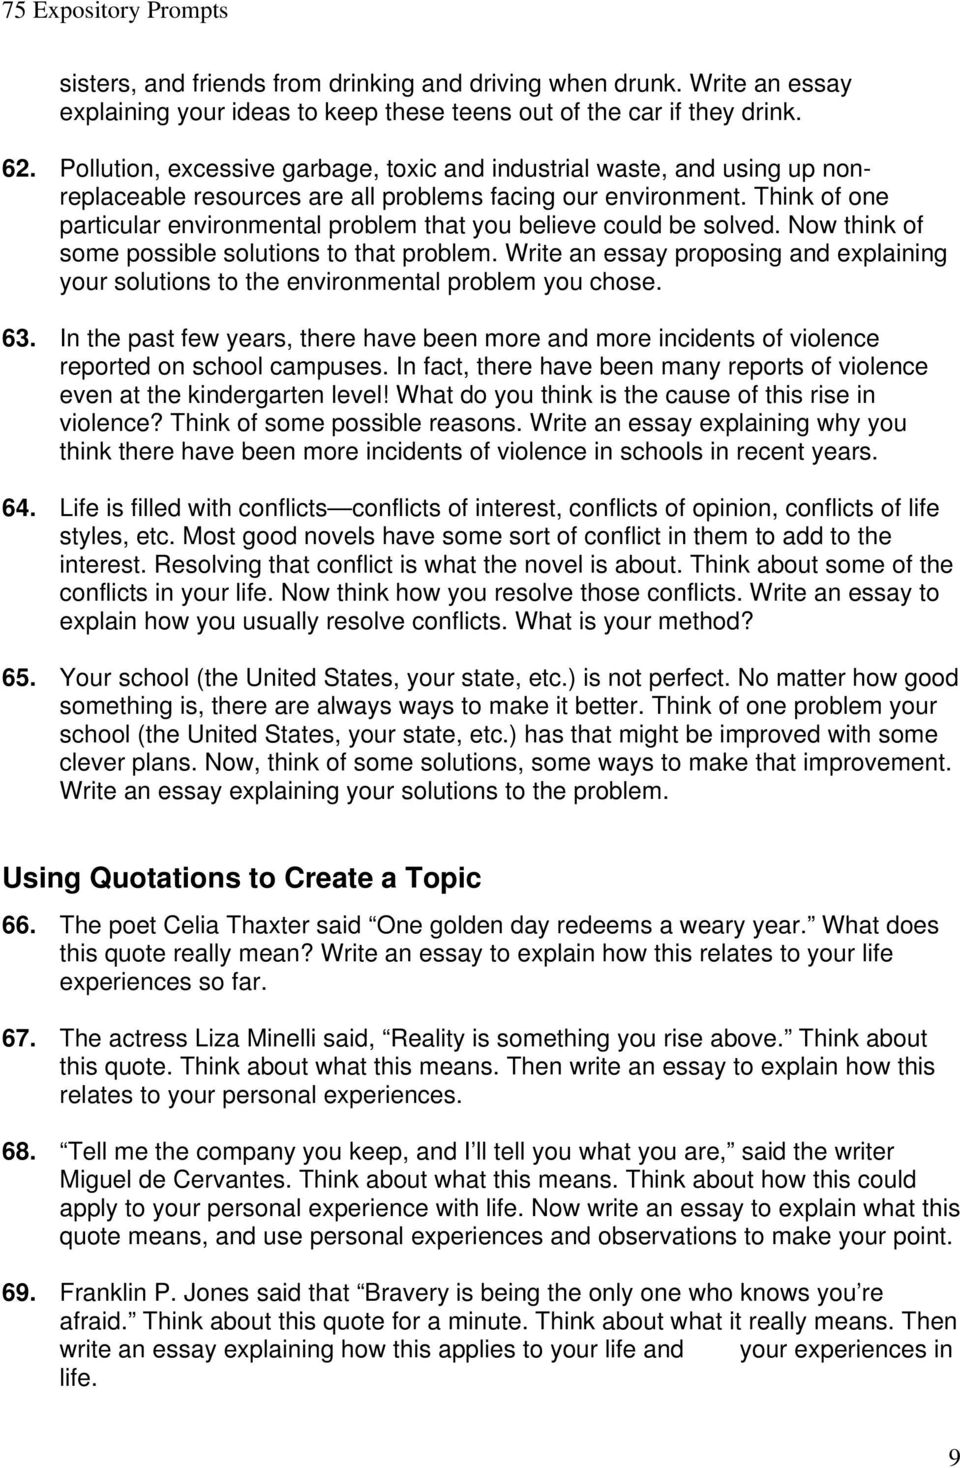 life experience essay cover letter life essays examples my life  expository prompts pdf think of one particular environmental problem that you believe could be solved now essay life changing experiences